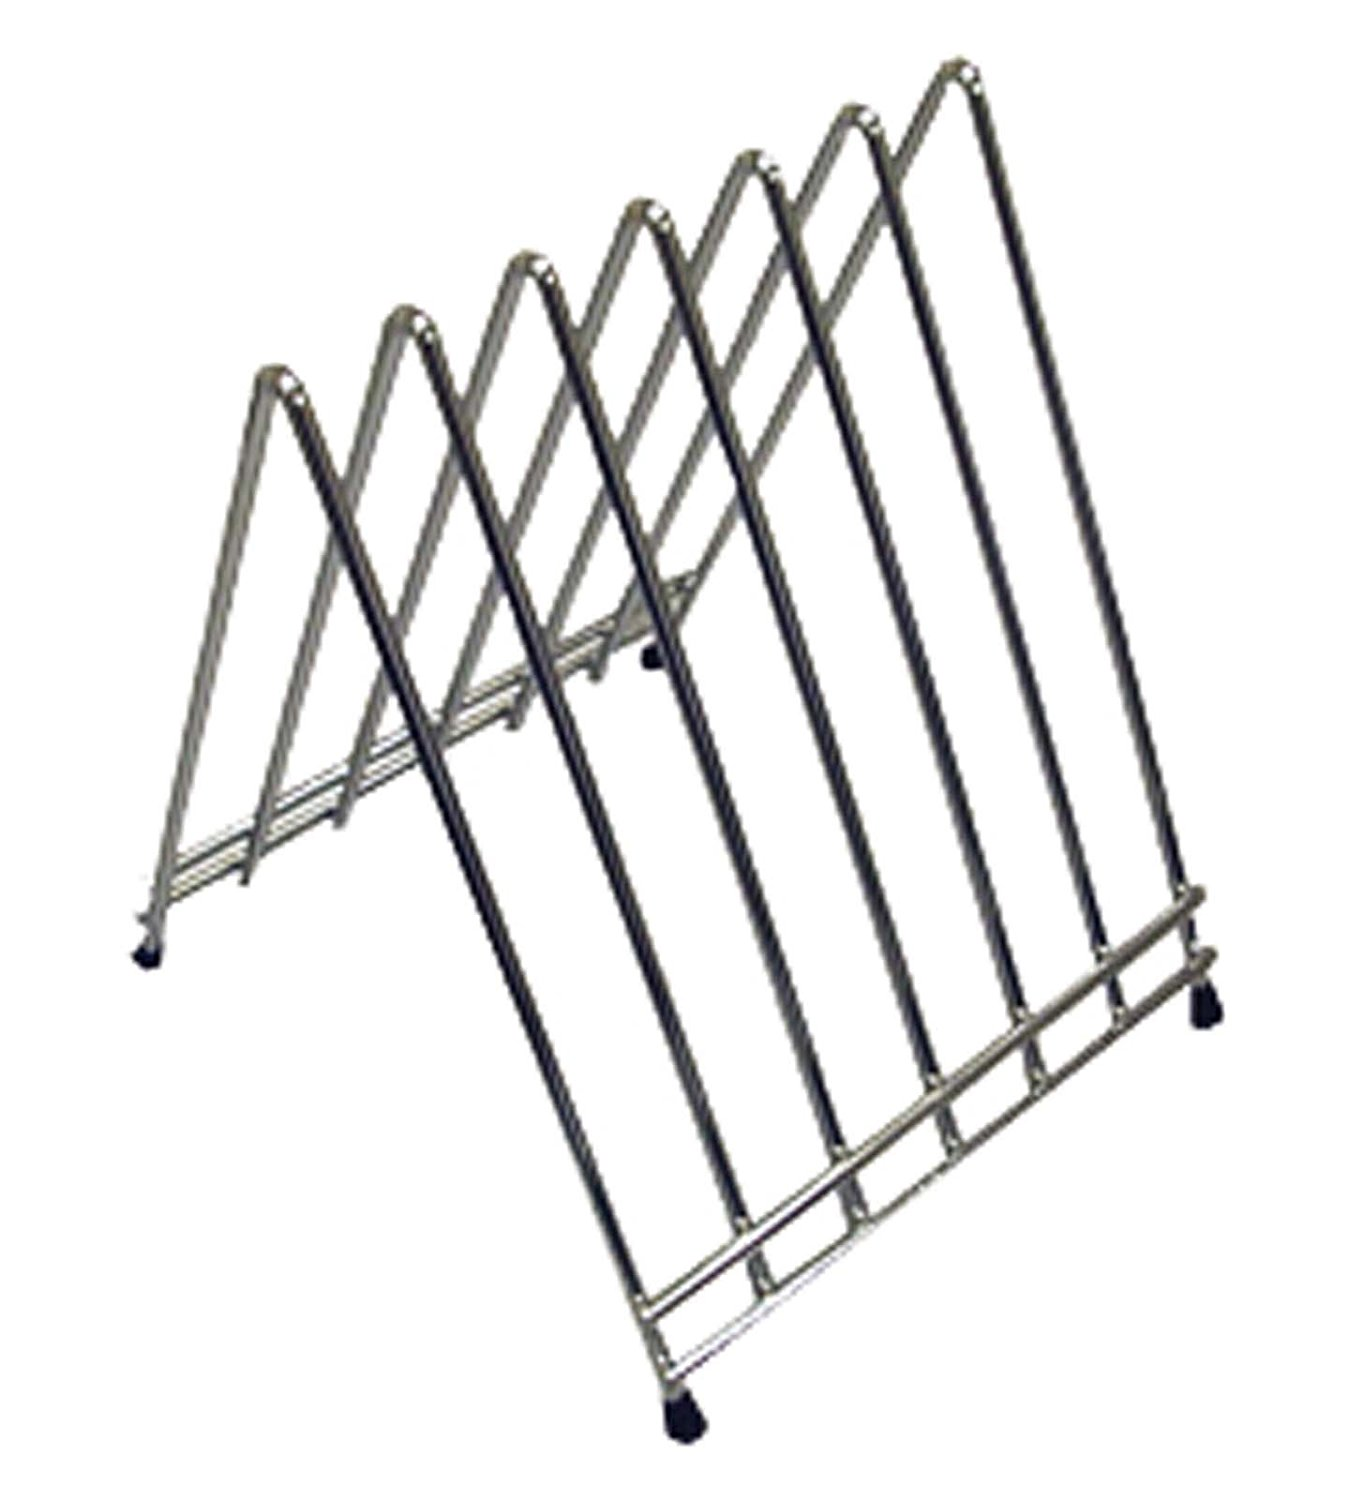 CB-6L 6-Slot Cutting Board Rack, Chrome Plated, Winco products are made to meet the high demands of a kitchen By Winco